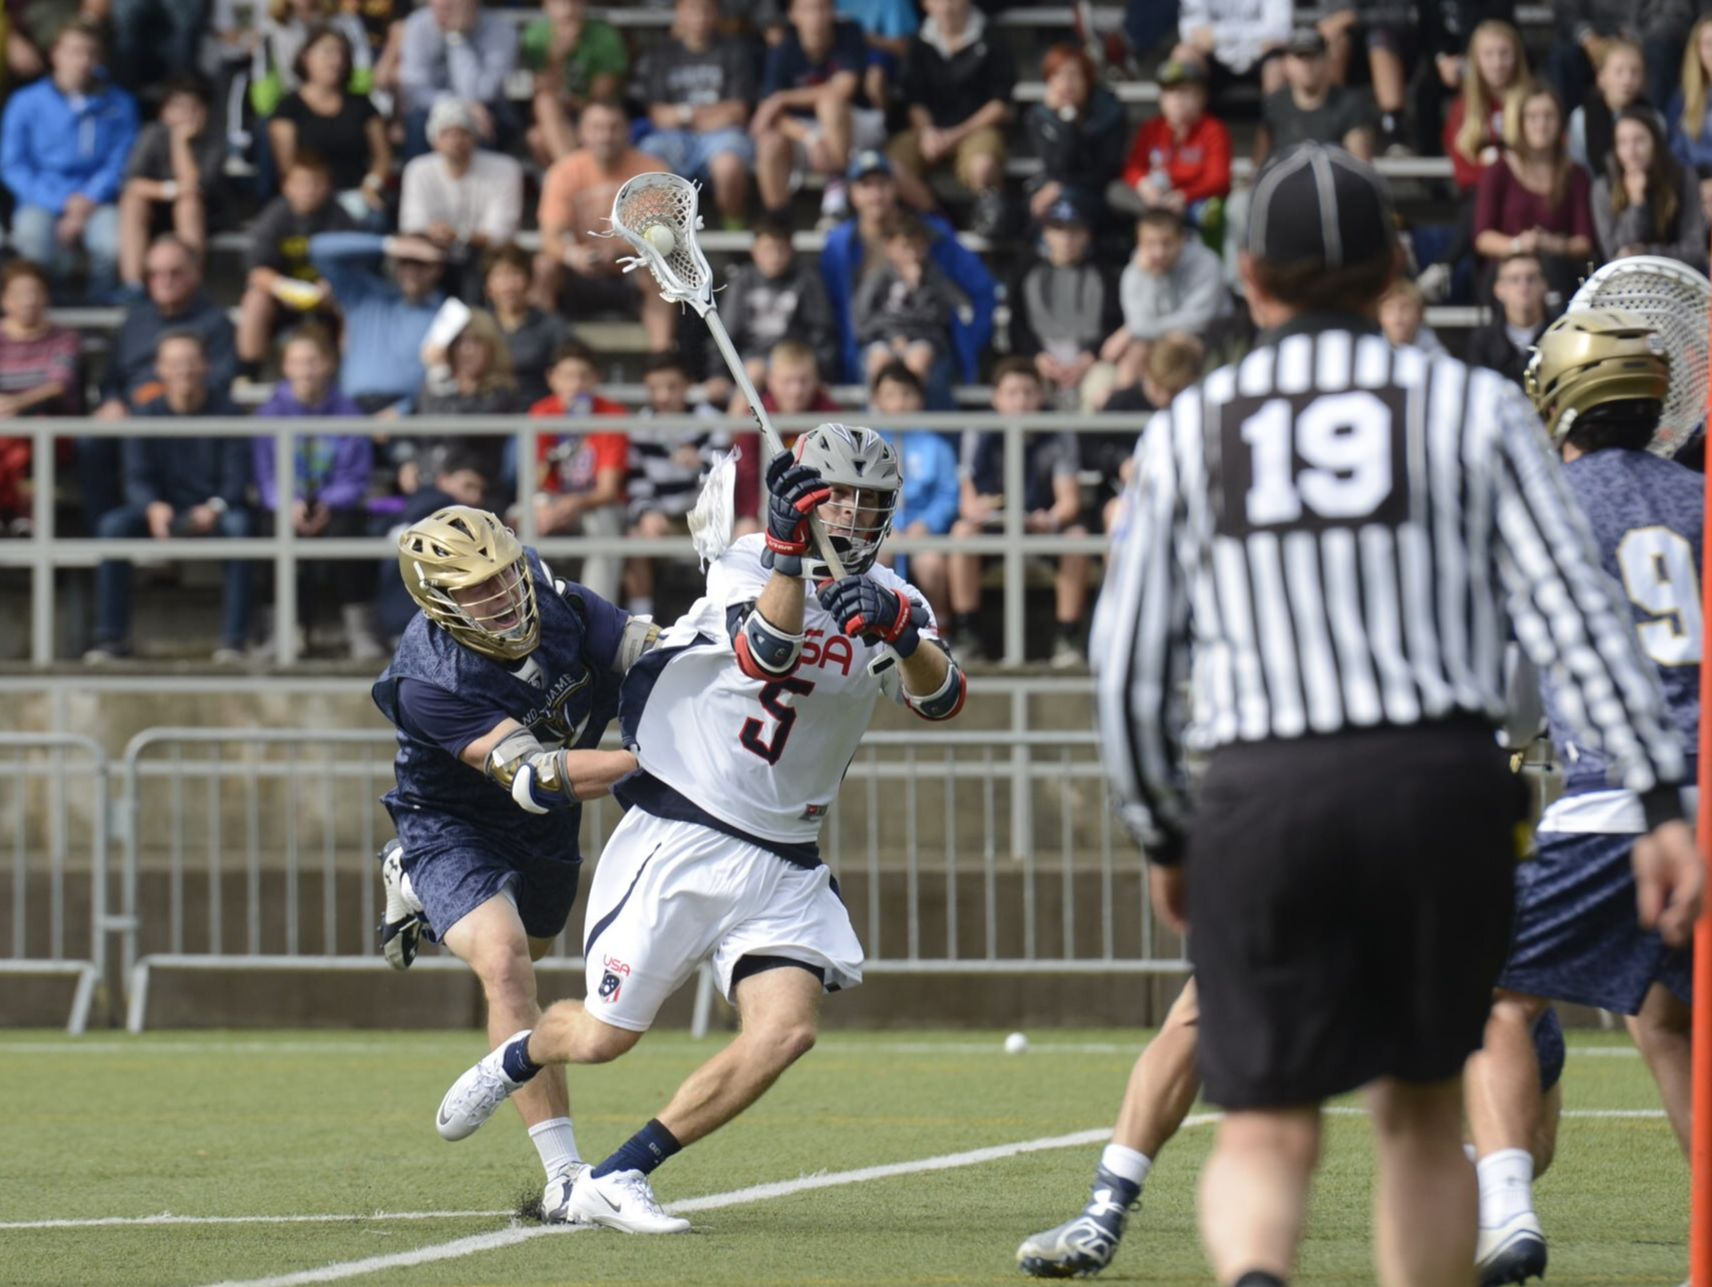 Seattle's Drew Snider (center), then playing for the U.S. National Team, takes a shot on the Notre Dame goal during the 2014 Seatown Classic at the Starfire Sports Complex in Tukwila.